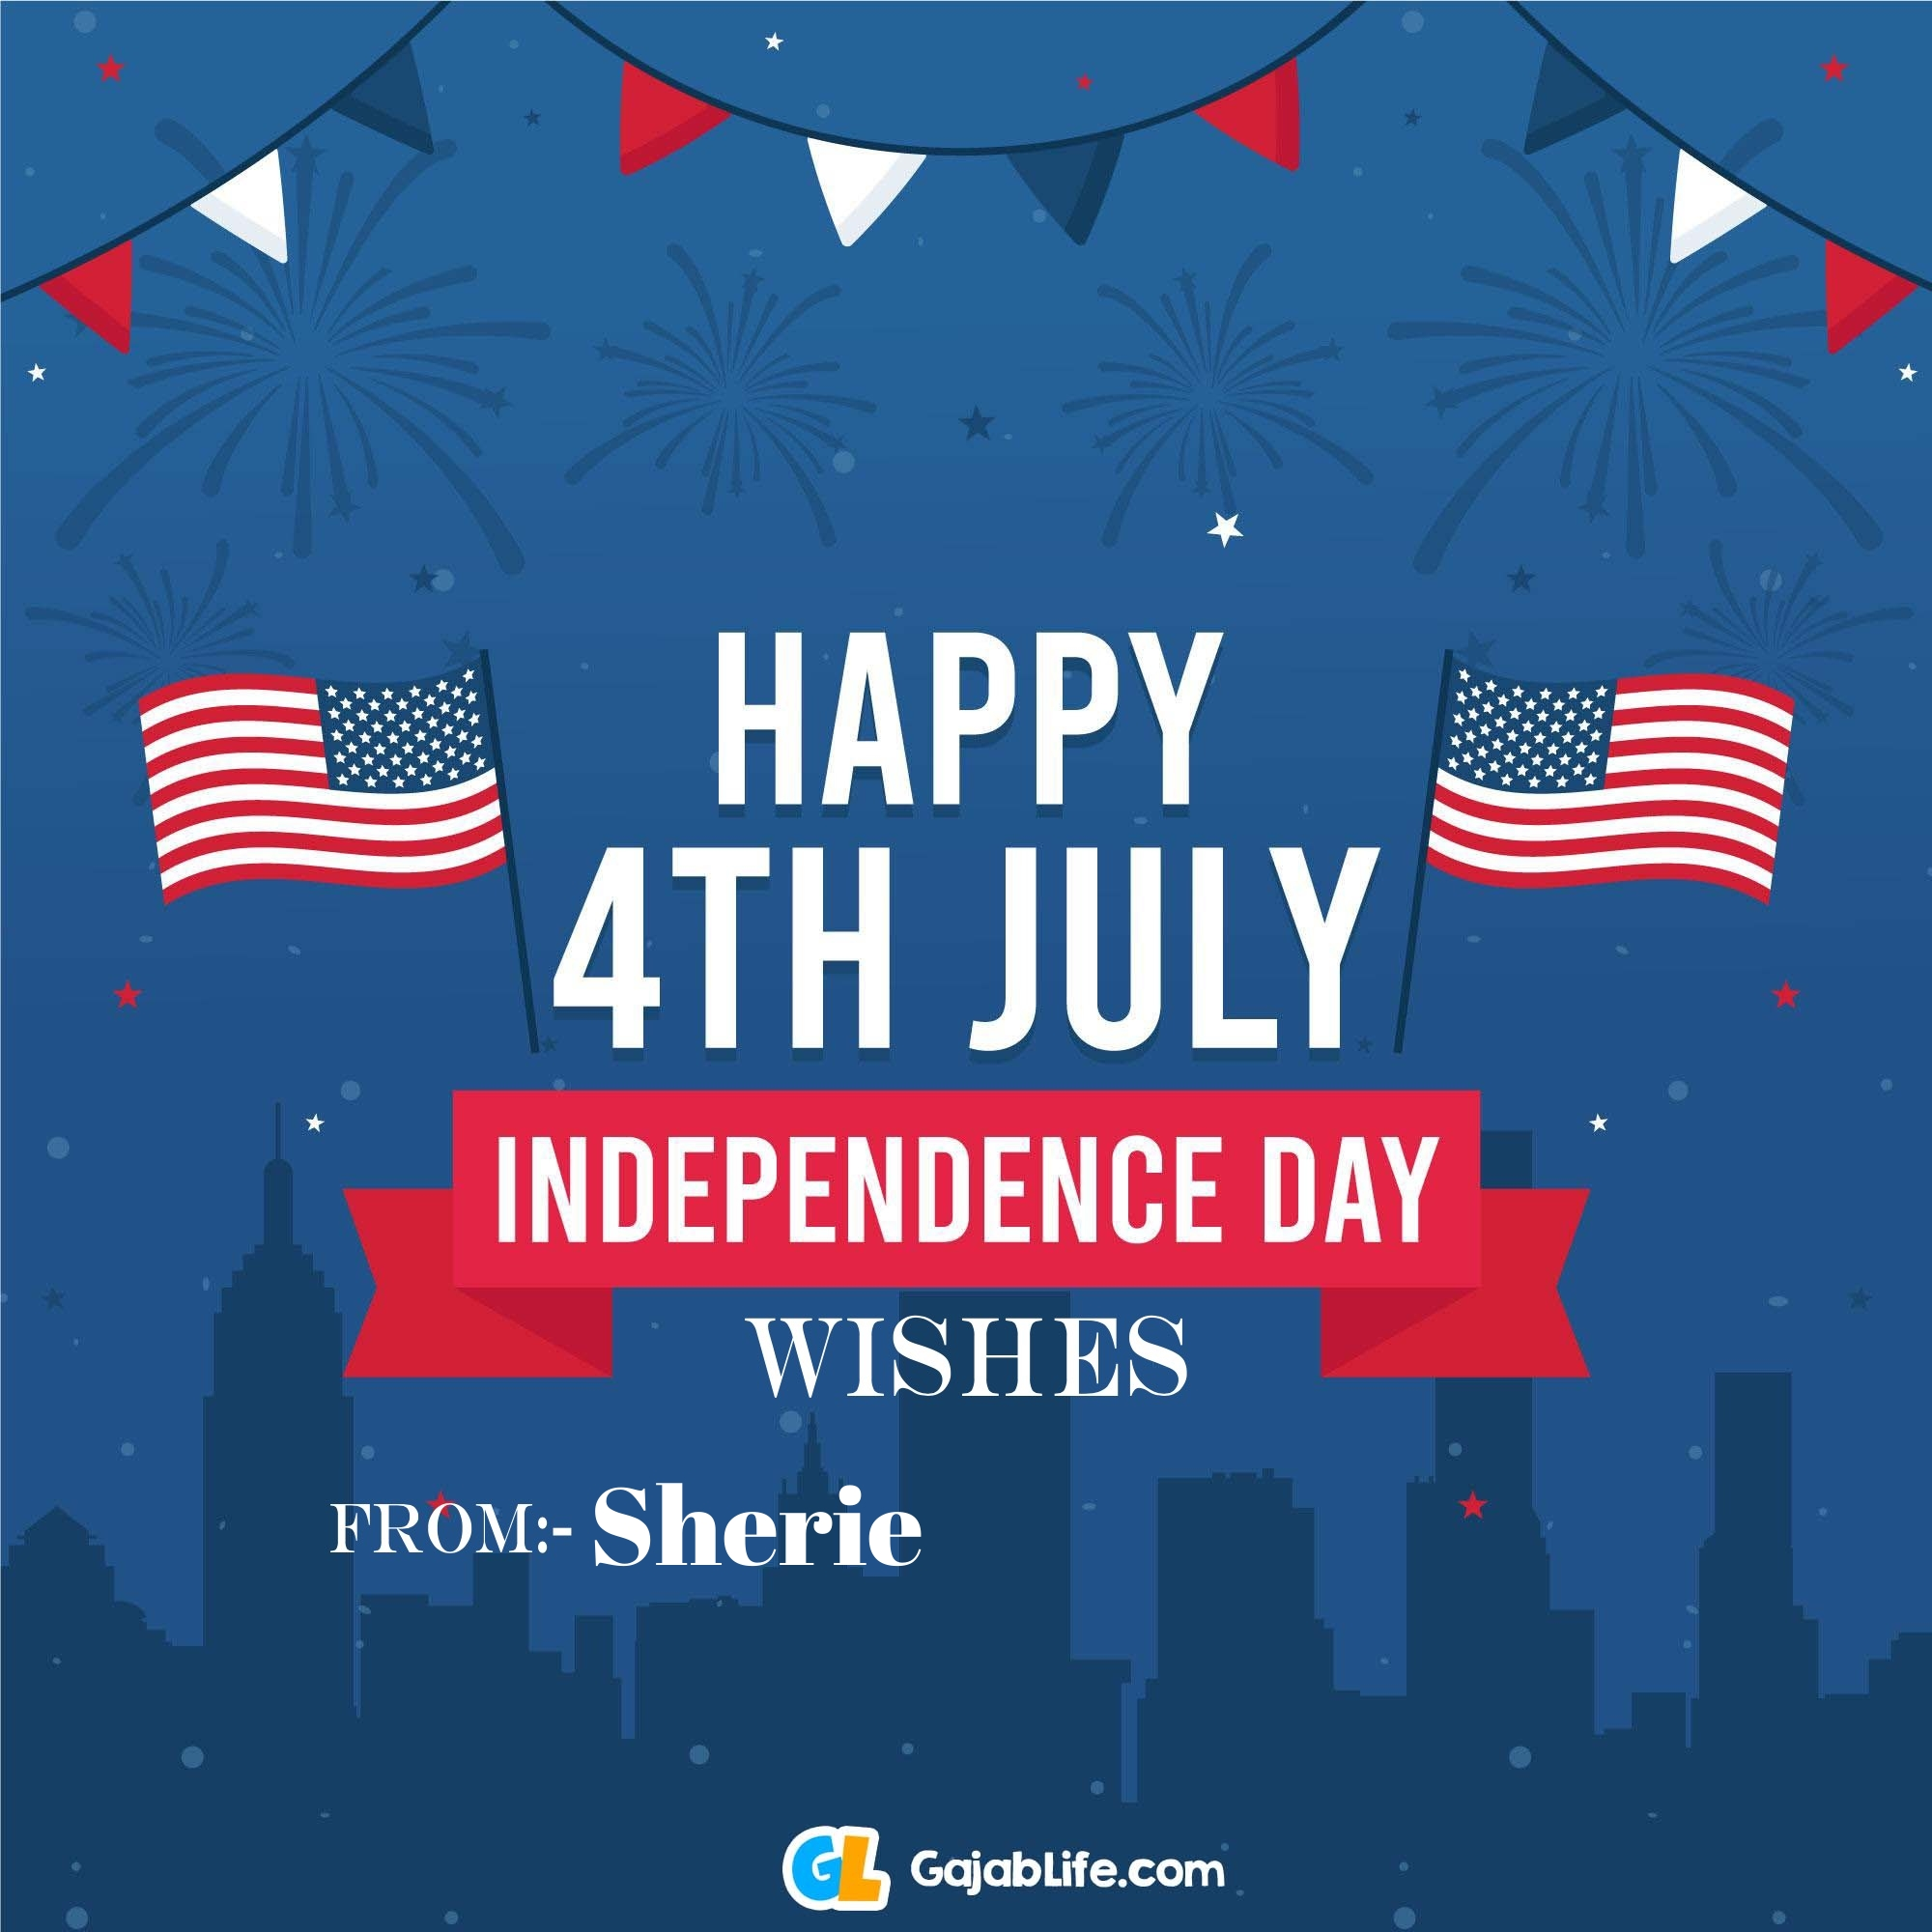 Sherie happy independence day united states of america images